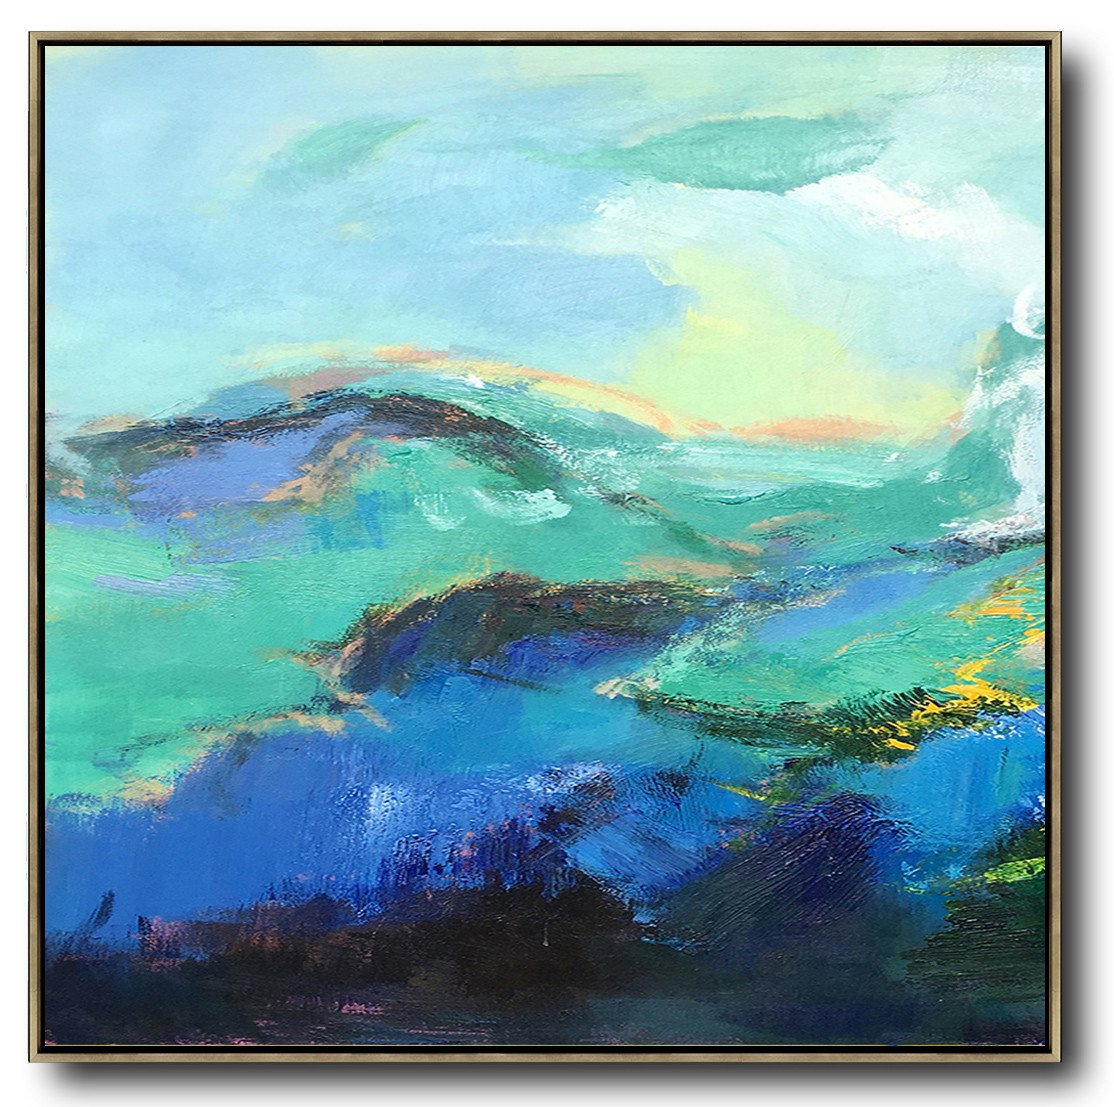 Oversized Canvas Art On Canvas,Oversized Palette Knife Painting Abstract Landscape Art On Canvas,Big Art Canvas,Blue,Green,Black.etc